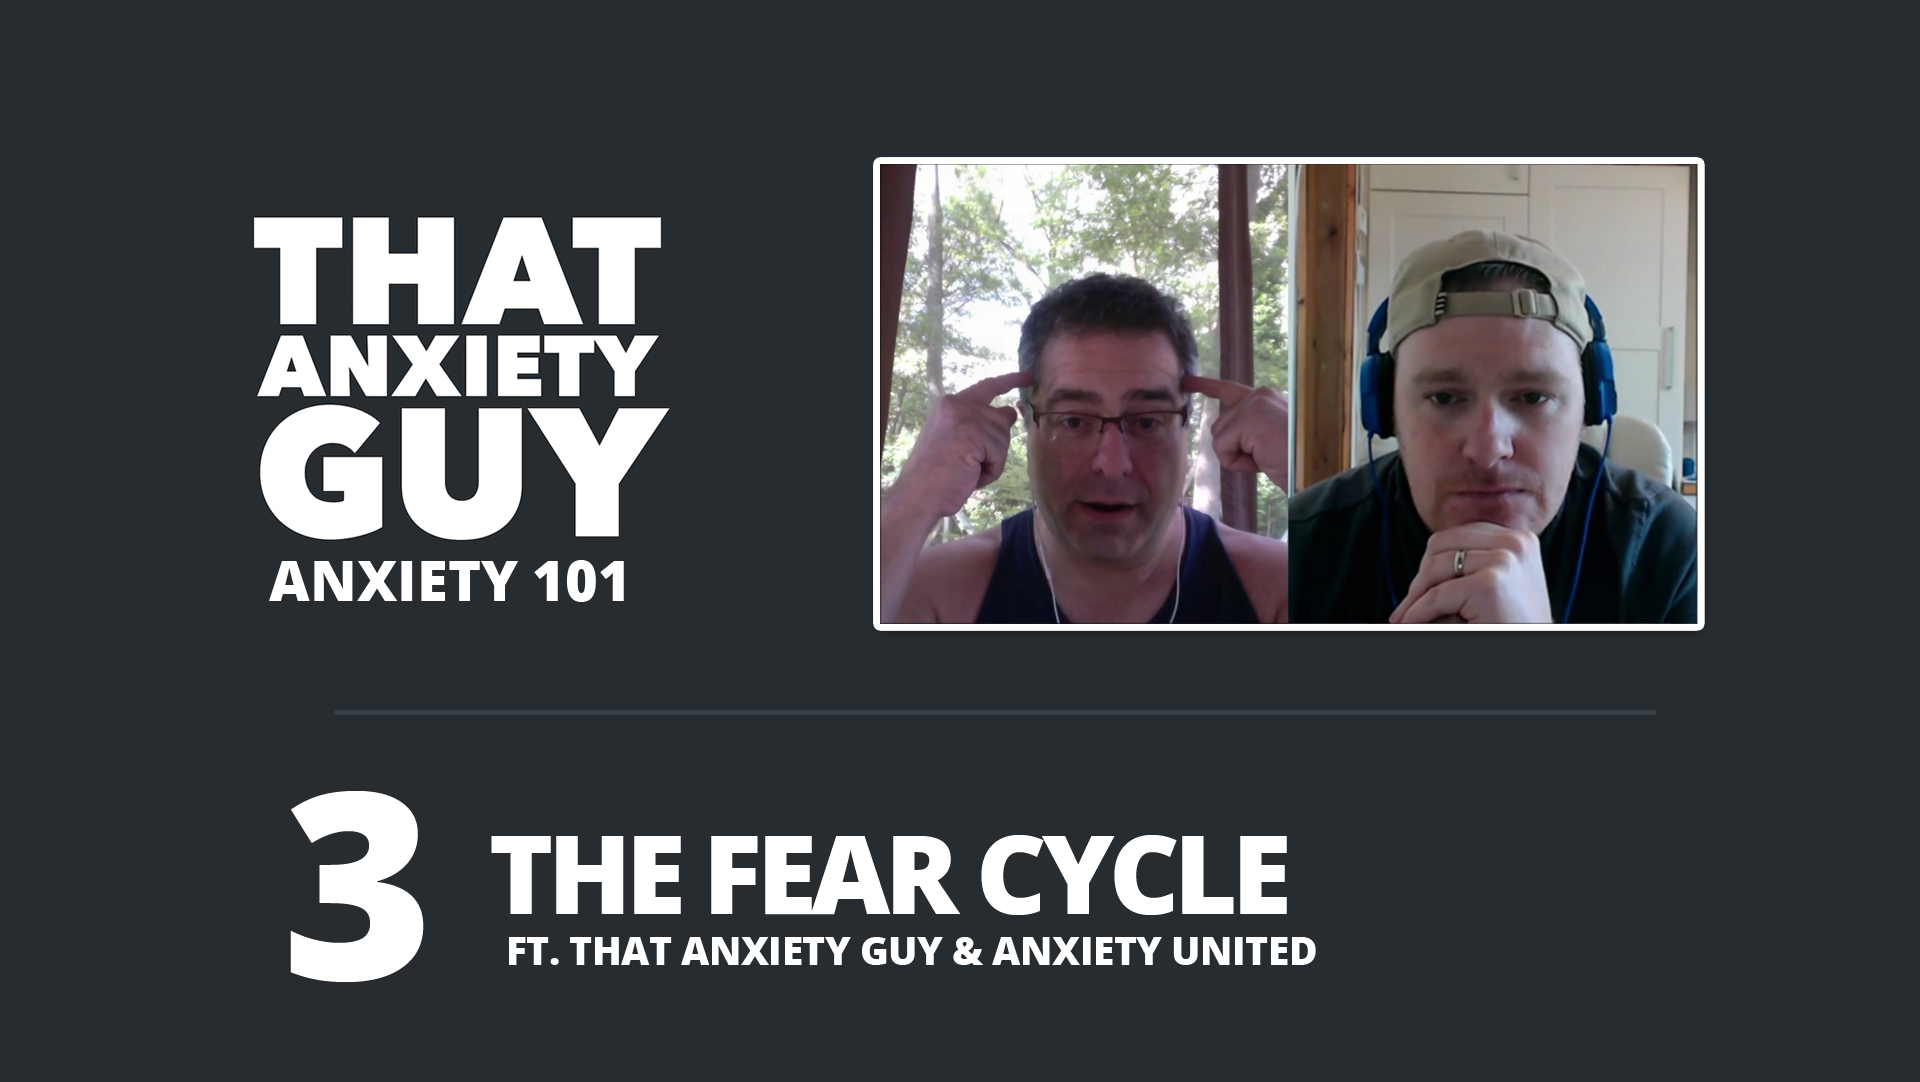 Anxiety 101 - Episode 3